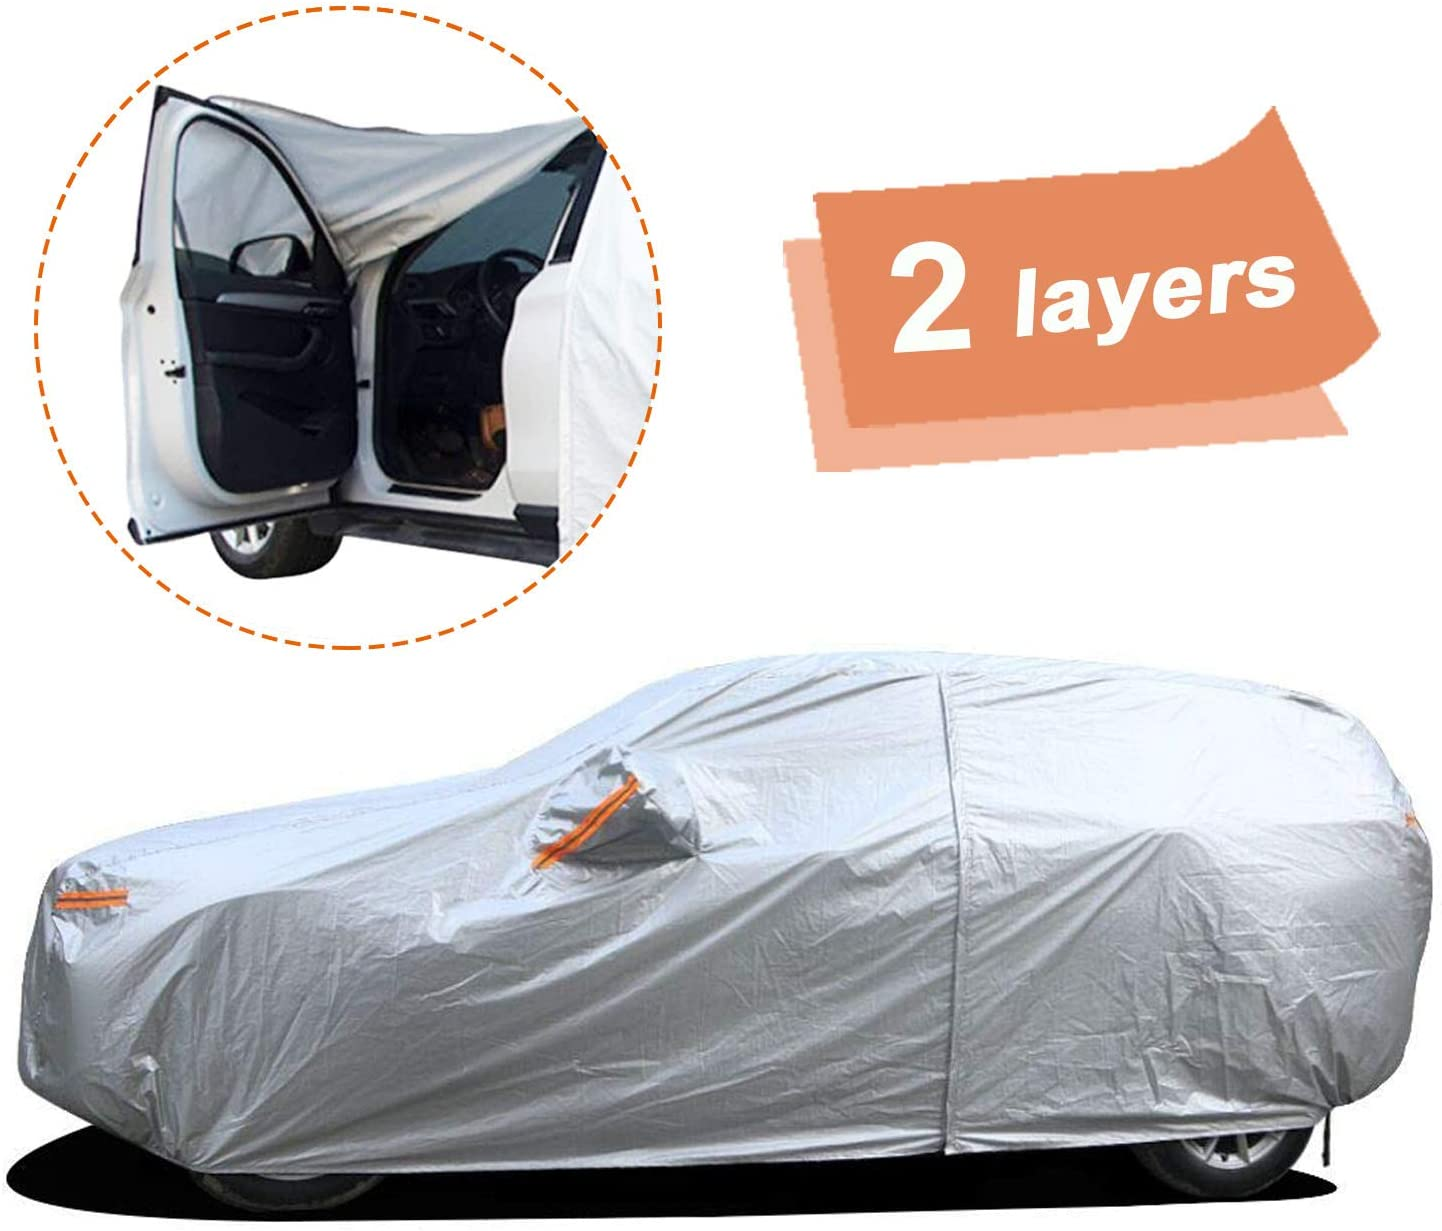 """SEAZEN Car Cover with Zipper,2 Layer Full Car Covers Waterproof All Weather,UV Protection Snowproof Dustproof,Universal Car Cover (Fit SUV Jeep-Length Up to 190"""")"""